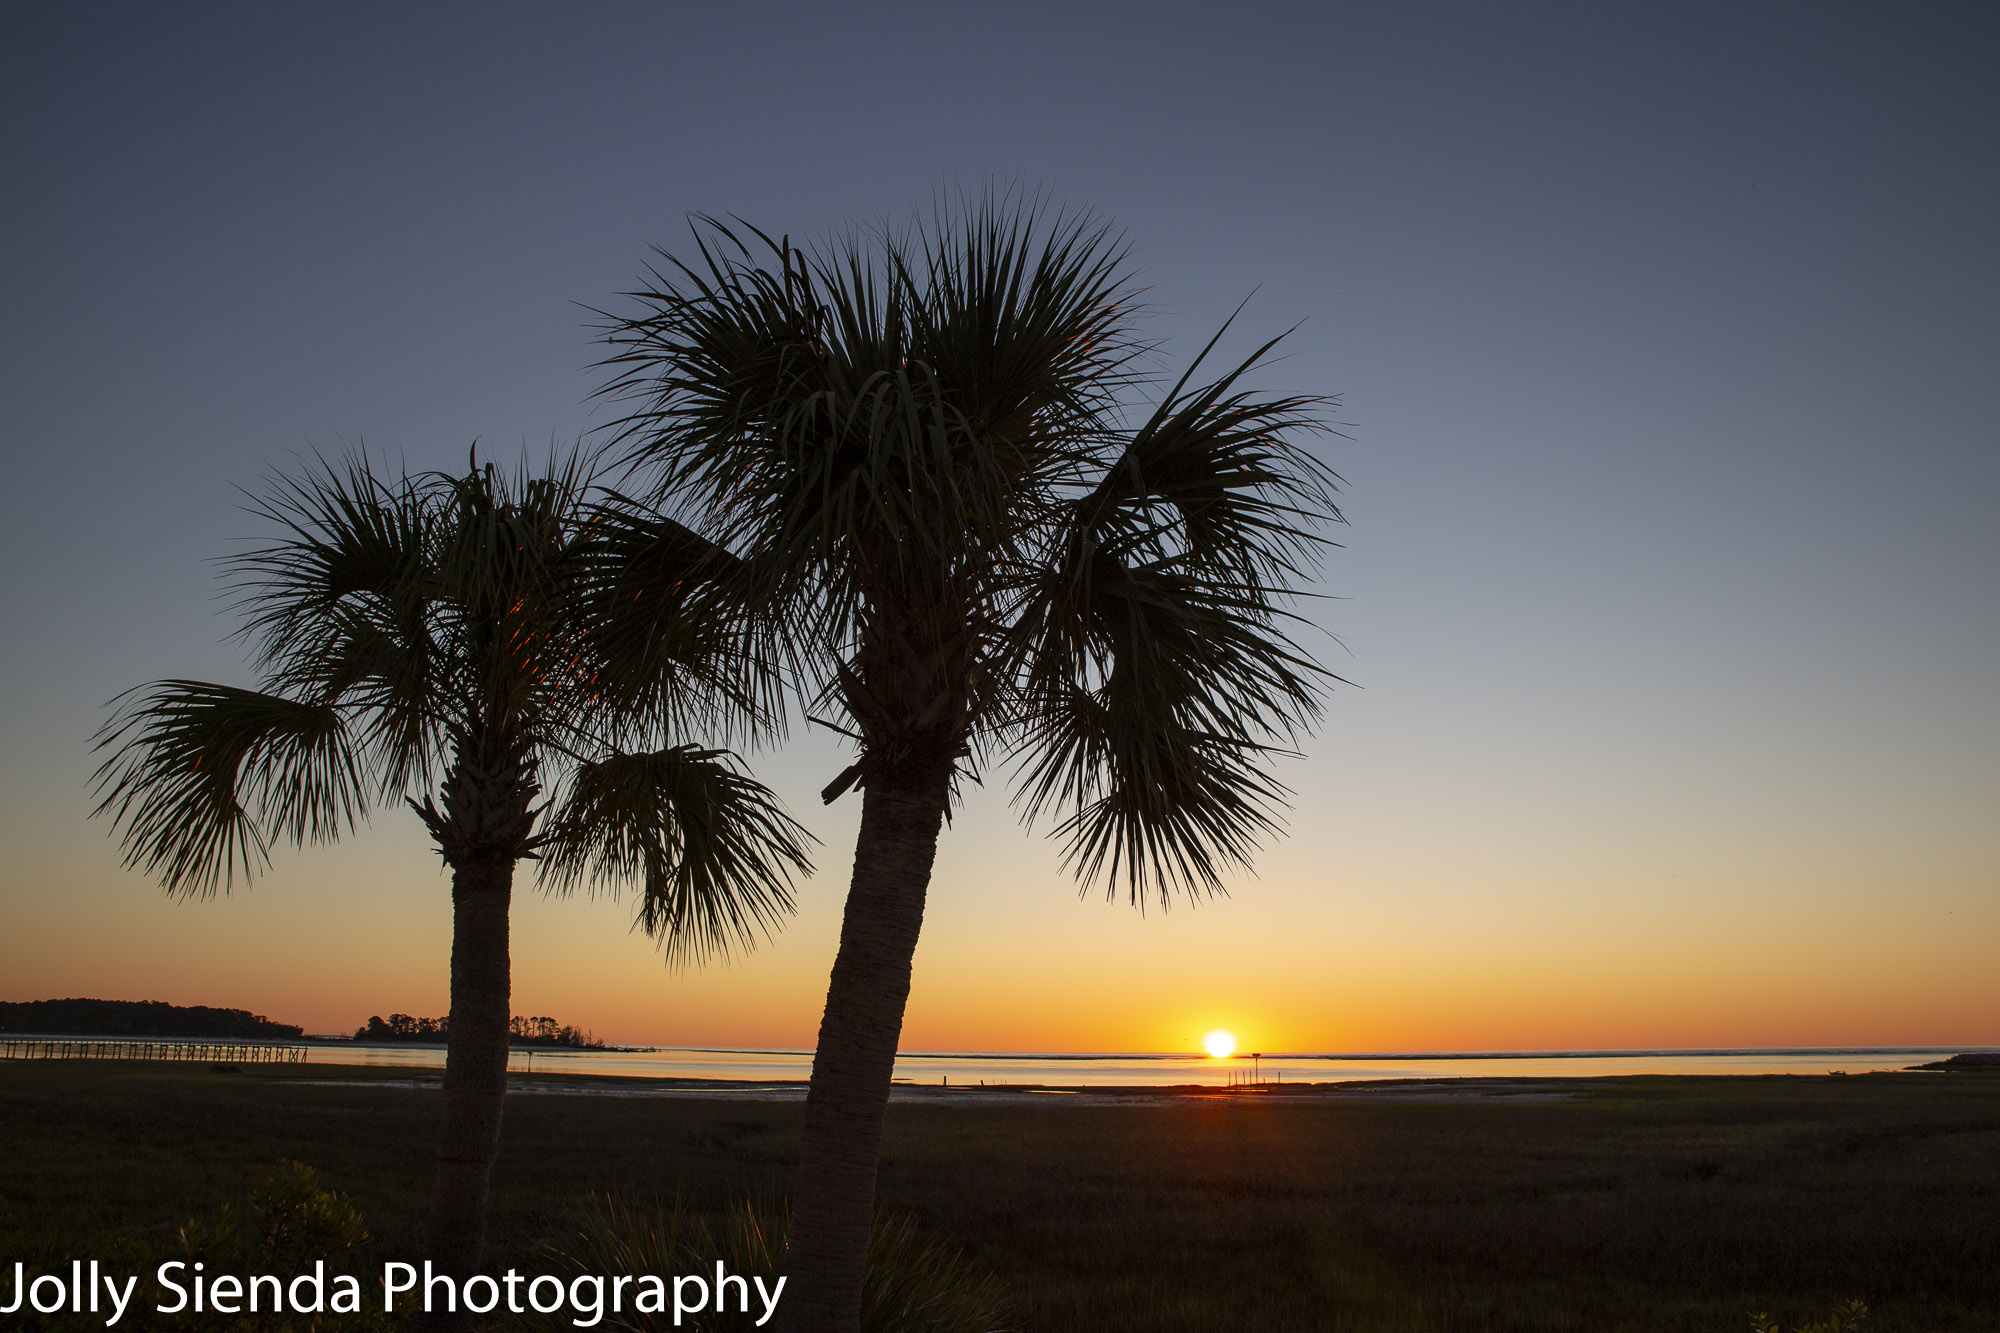 Sunrise over the marsh and palm trees at Fripp Island; a barrier island off of South Carolina